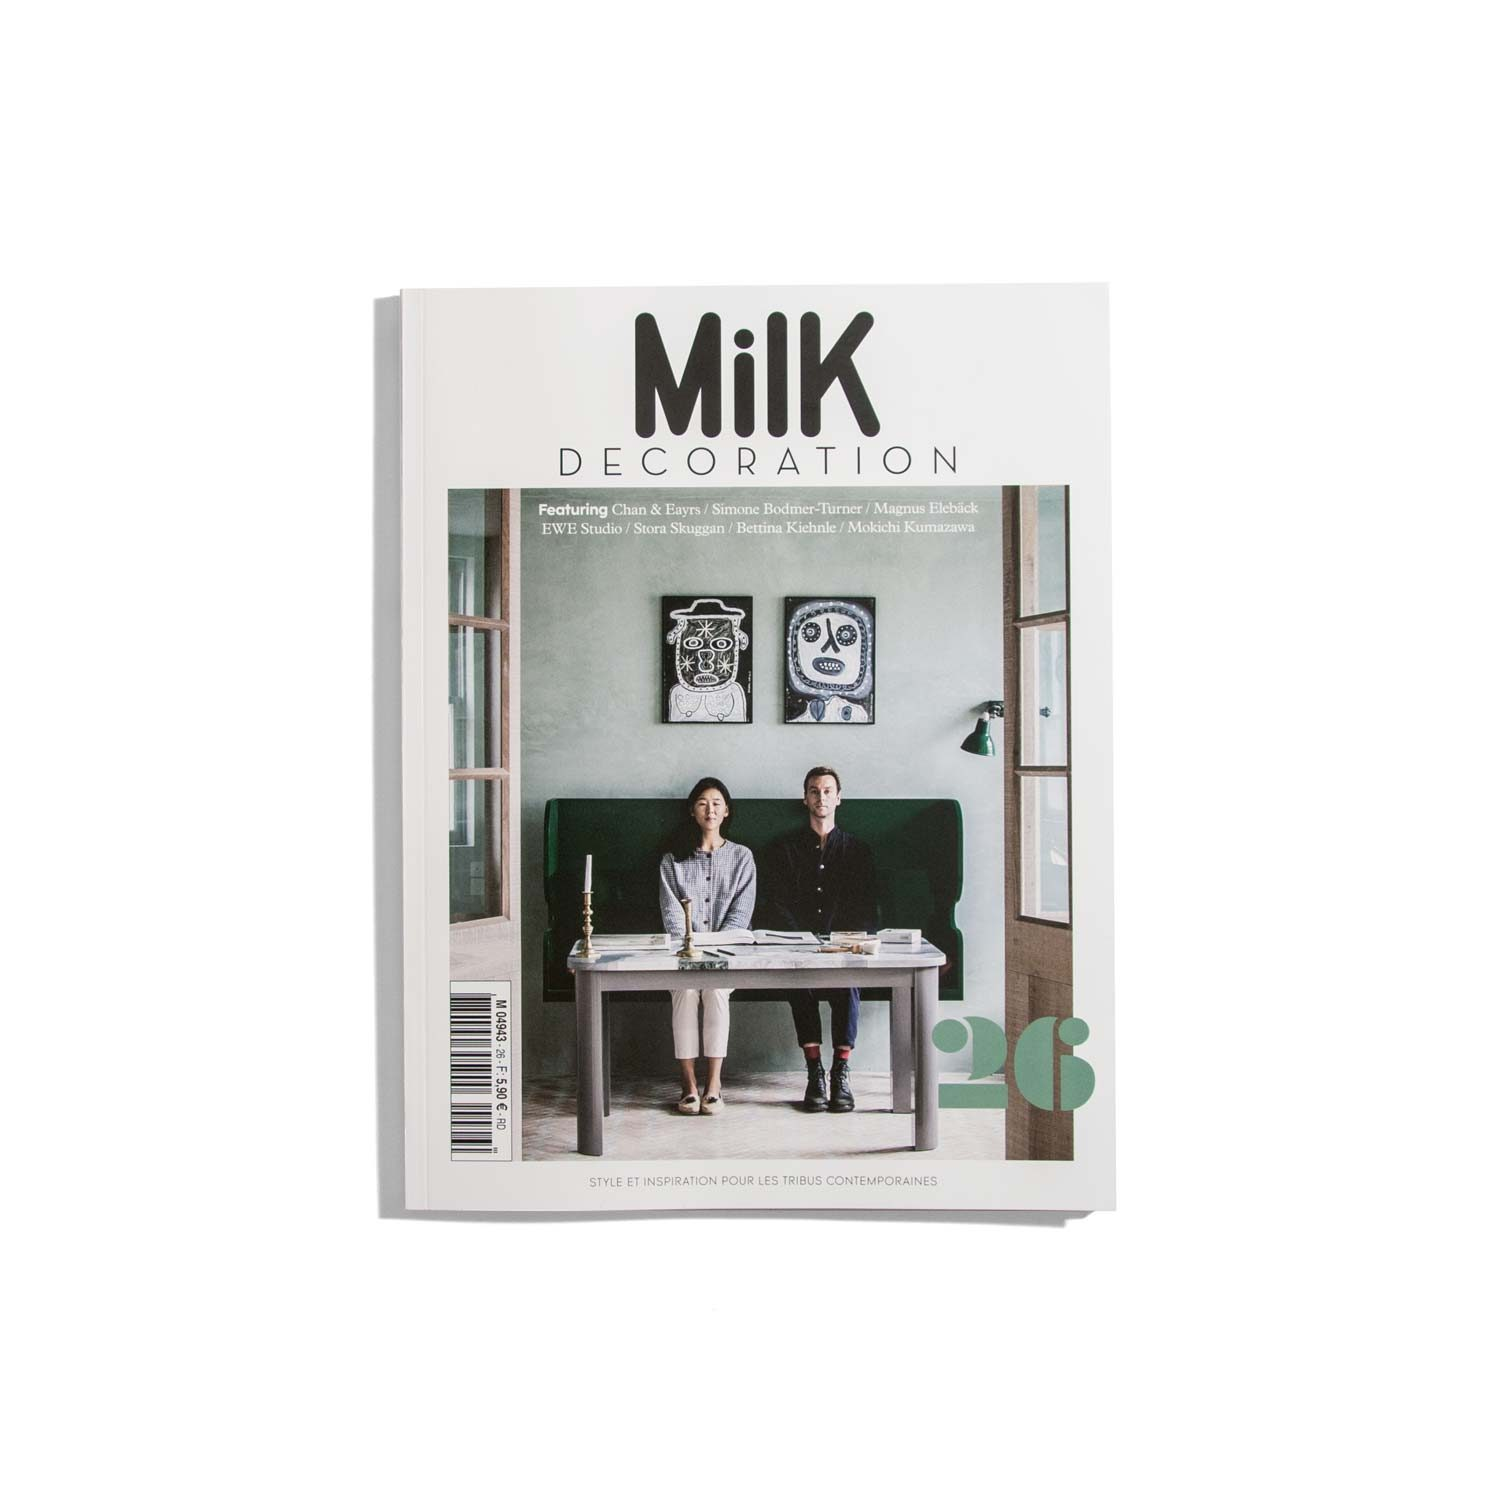 Milk Decoration Dec.-Feb 2018/19